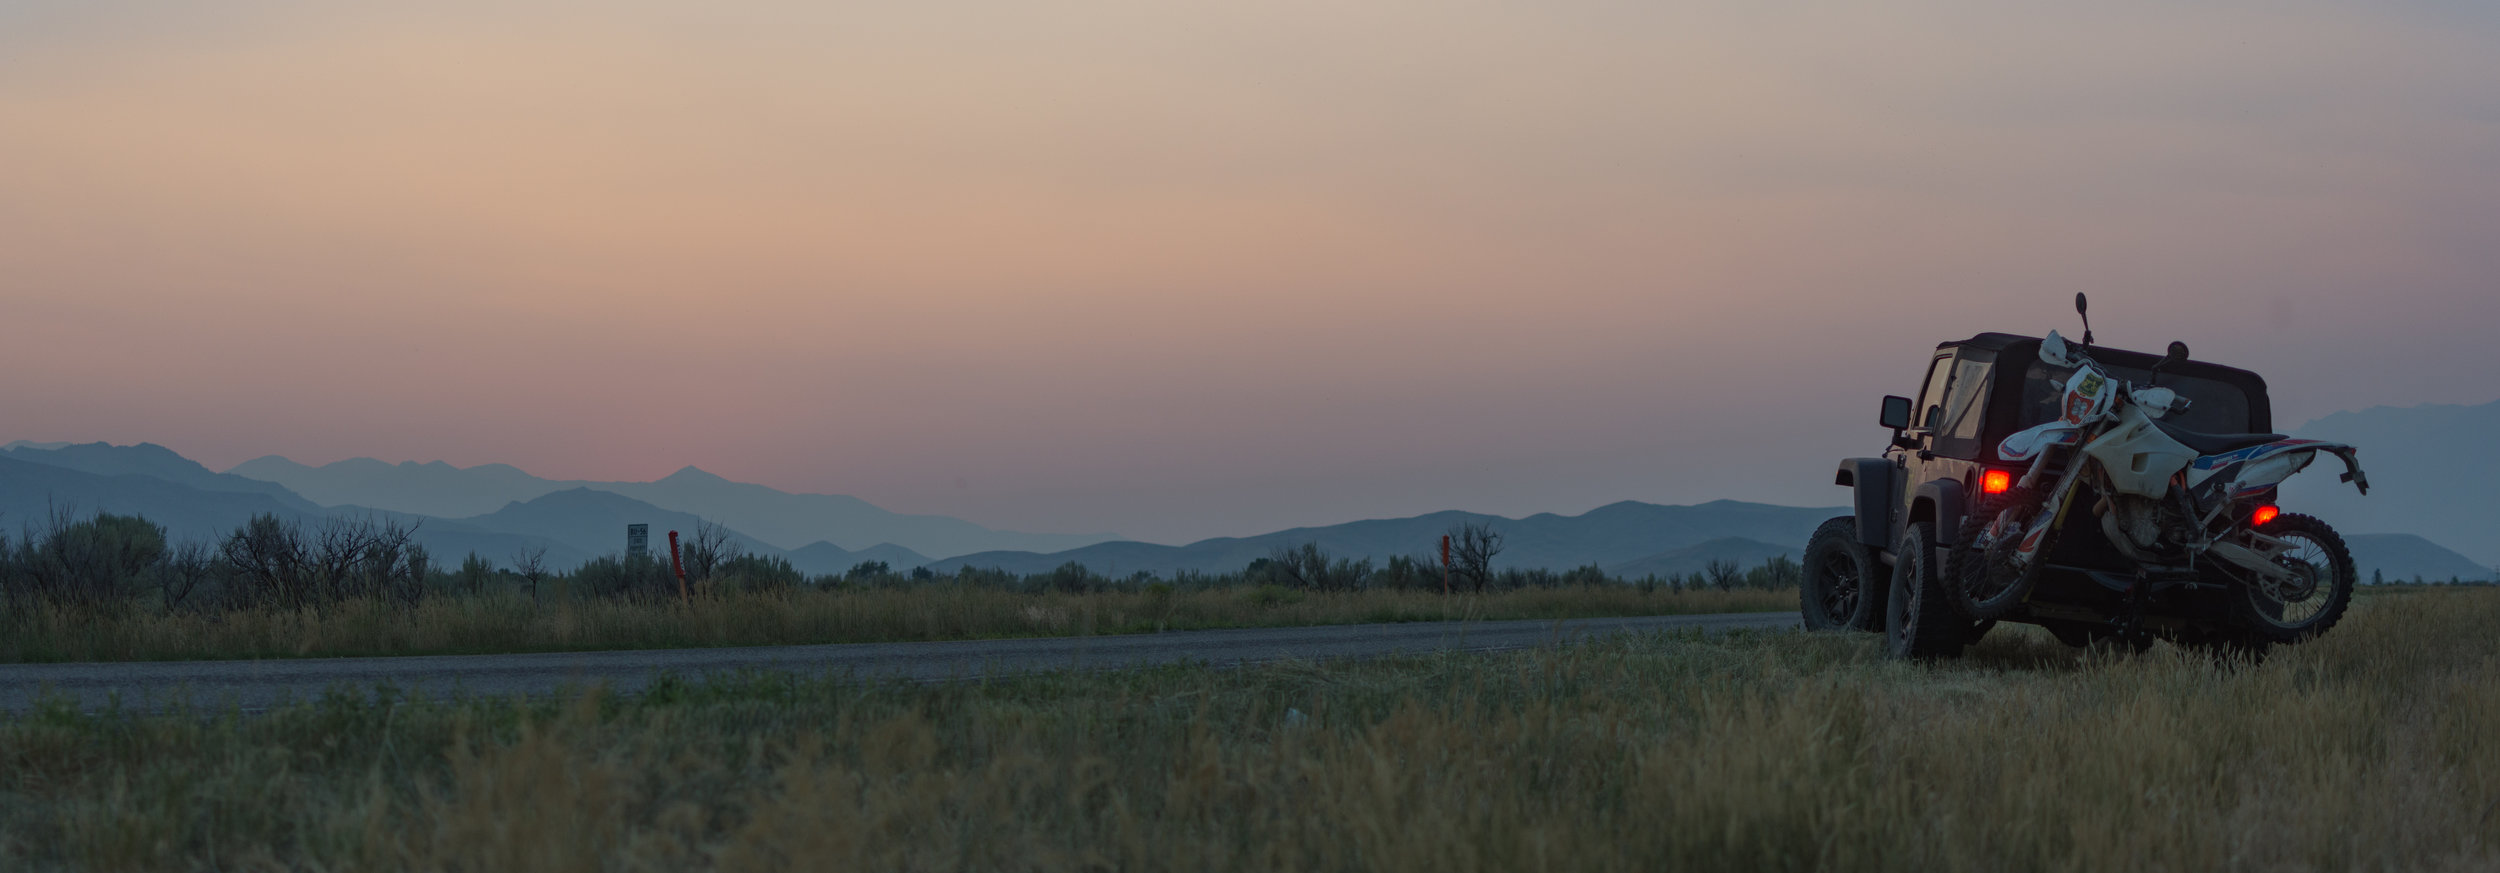 Smoky sunset just outside of Mackay, ID.